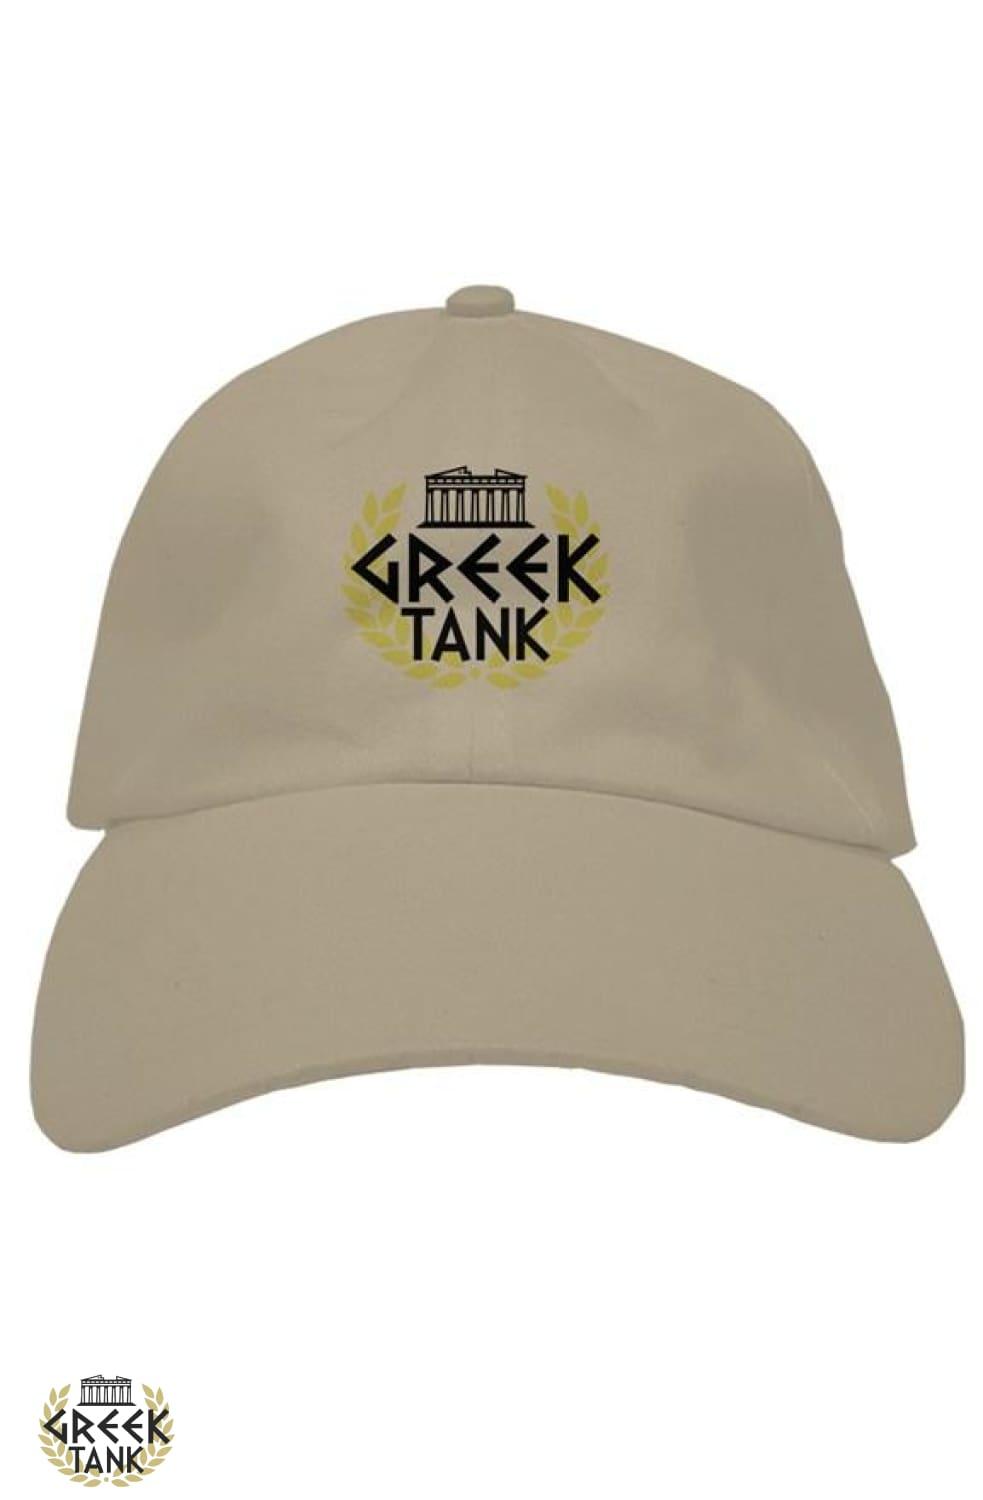 GreekTank Hat Black Logo